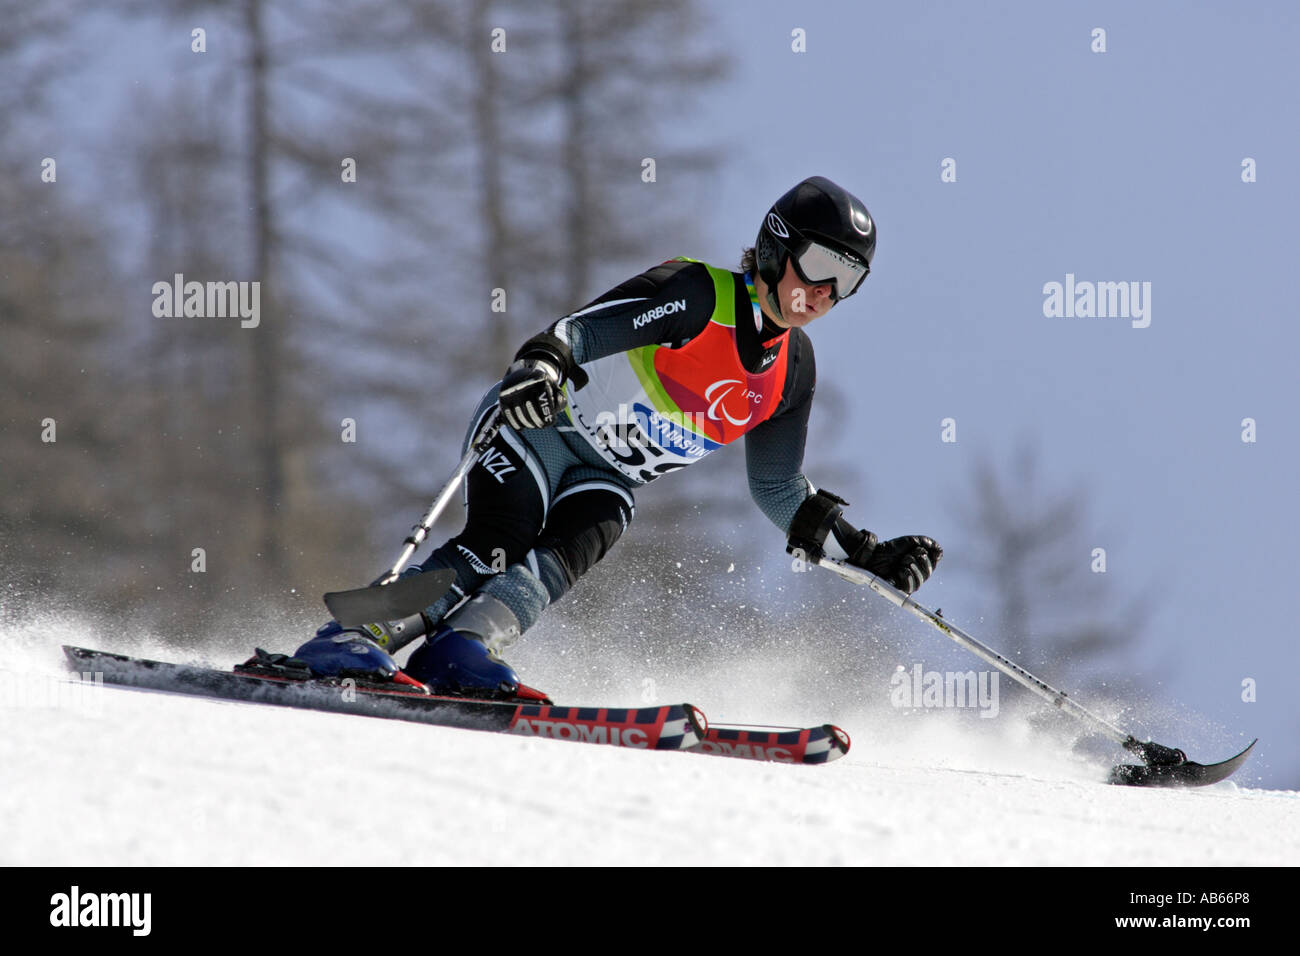 Adam Hall LW1 of New Zealand on his second run of the Mens Alpine Skiing Giant Slalom Standing competition - Stock Image